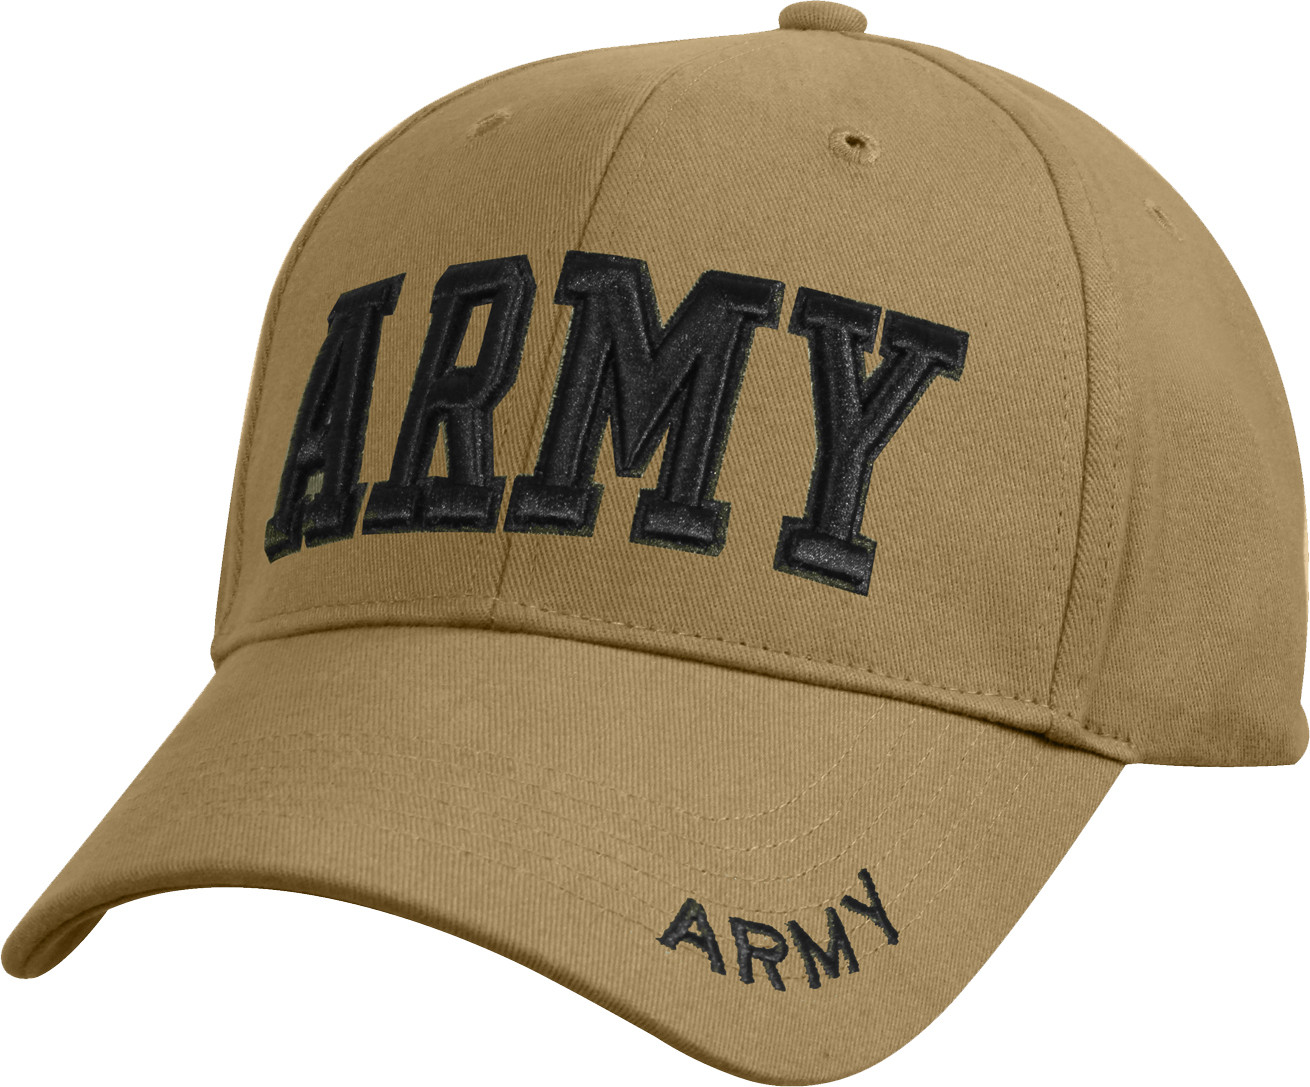 Coyote Brown Military US Army Deluxe Low Profile Adjustable Cap c28c5b6c5d1c